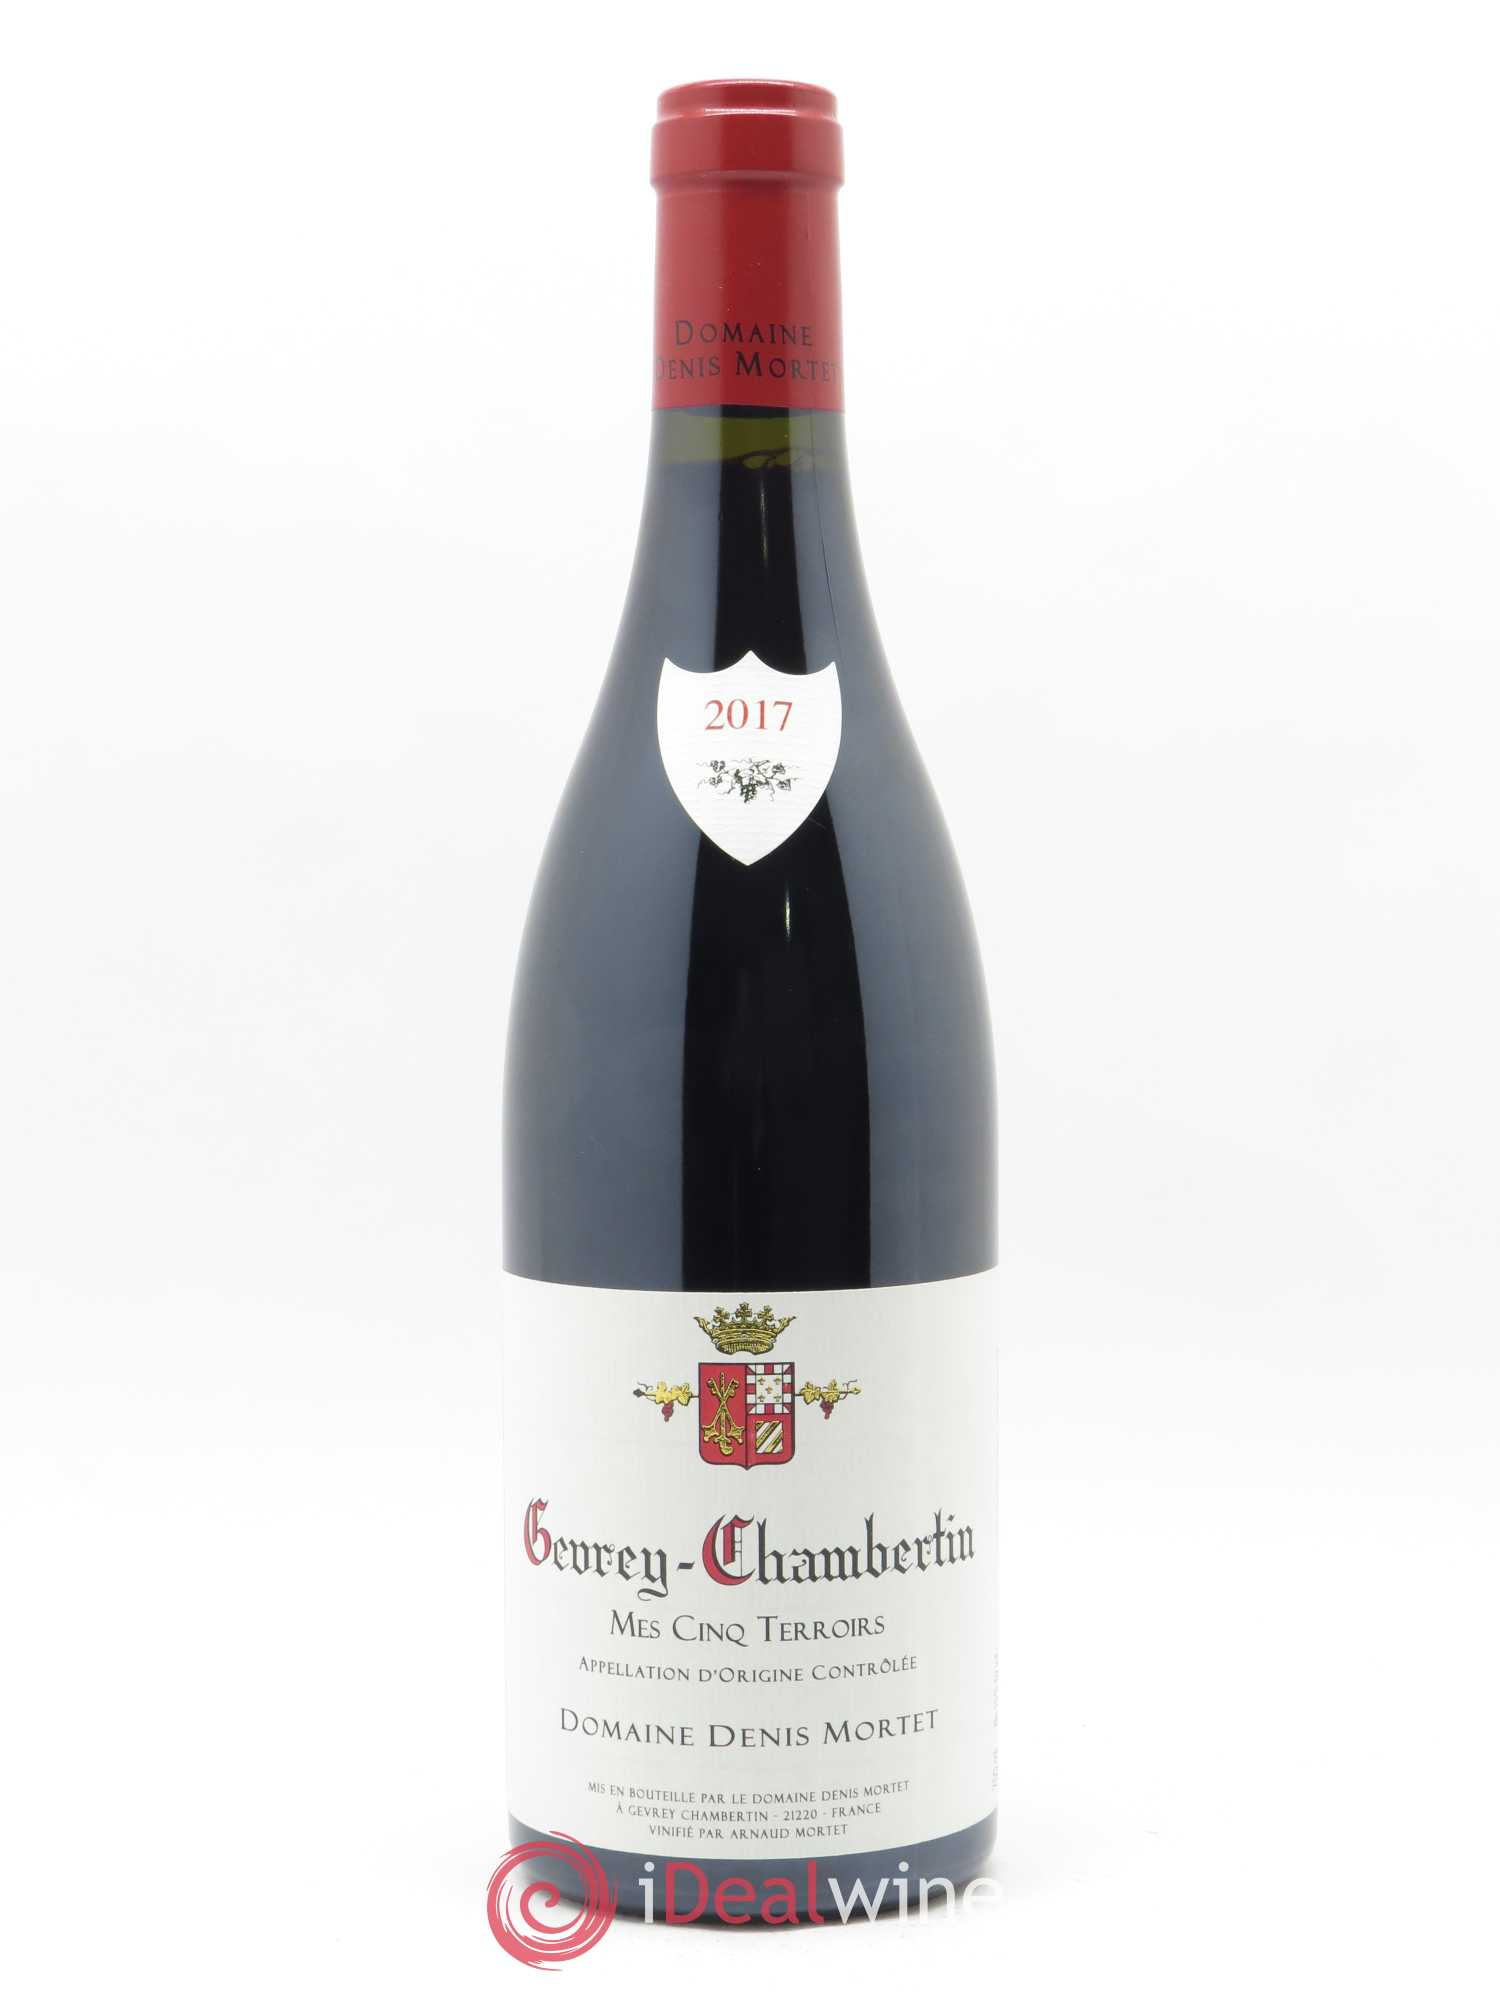 Gevrey-Chambertin Mes Cinq Terroirs Denis Mortet (Domaine)  2017 - Lot of 1 Bottle